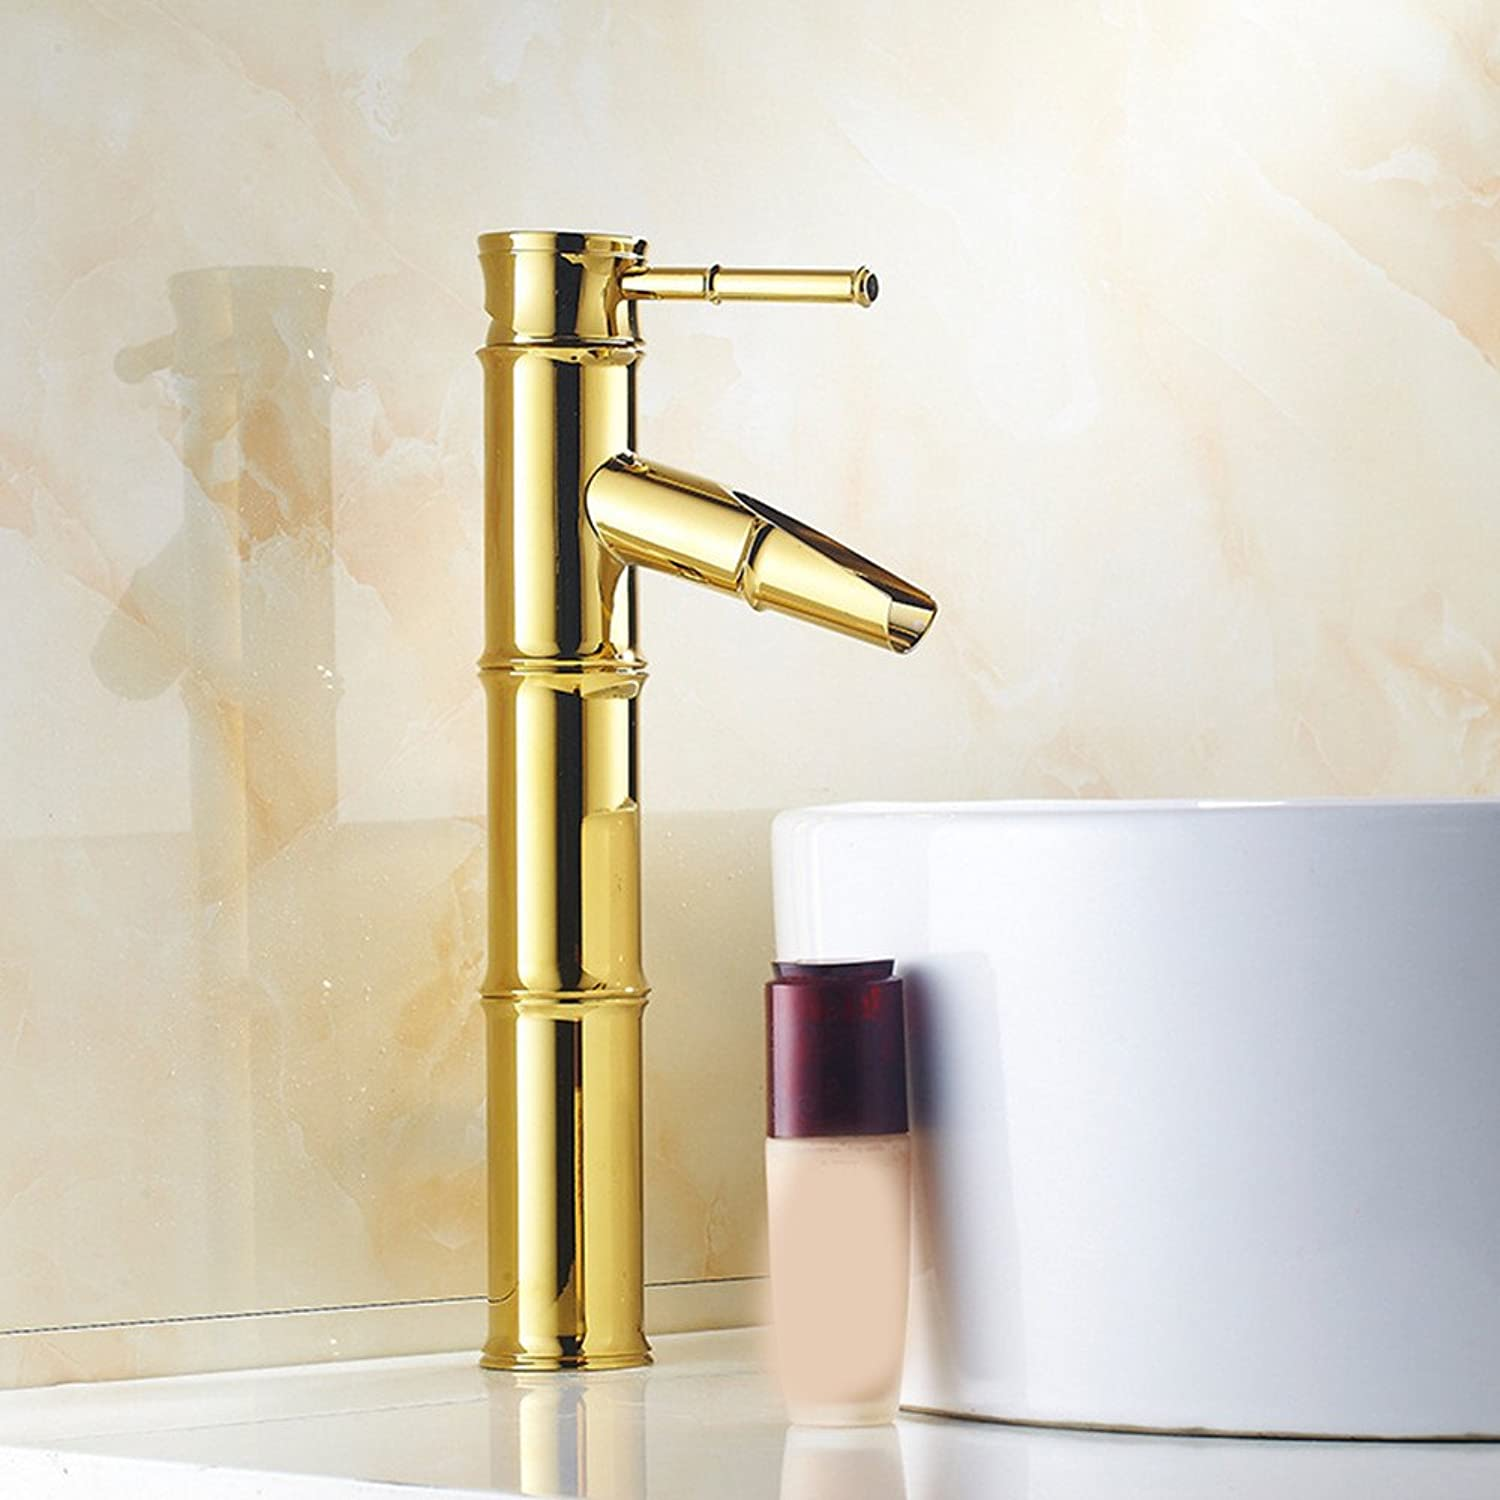 Hlluya Professional Sink Mixer Tap Kitchen Faucet The copper fittings gold plated antique bamboo basin